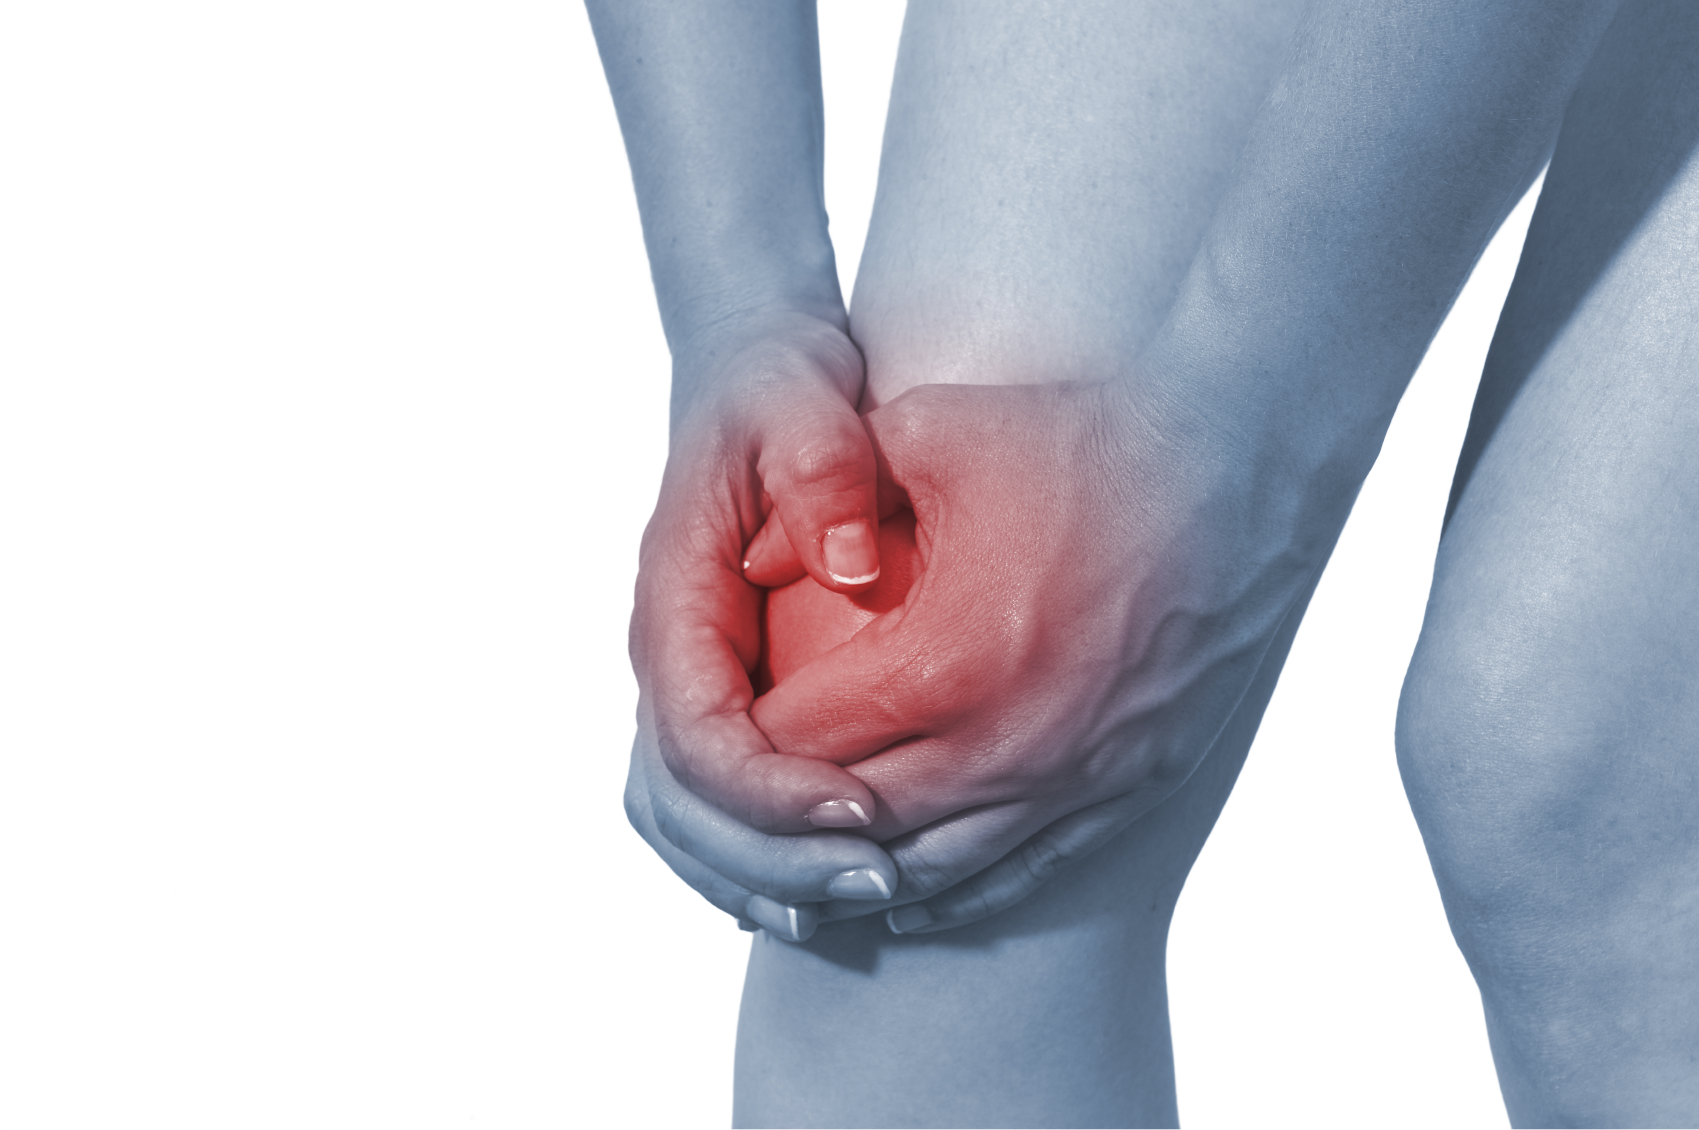 Strengthening Support for the Knees